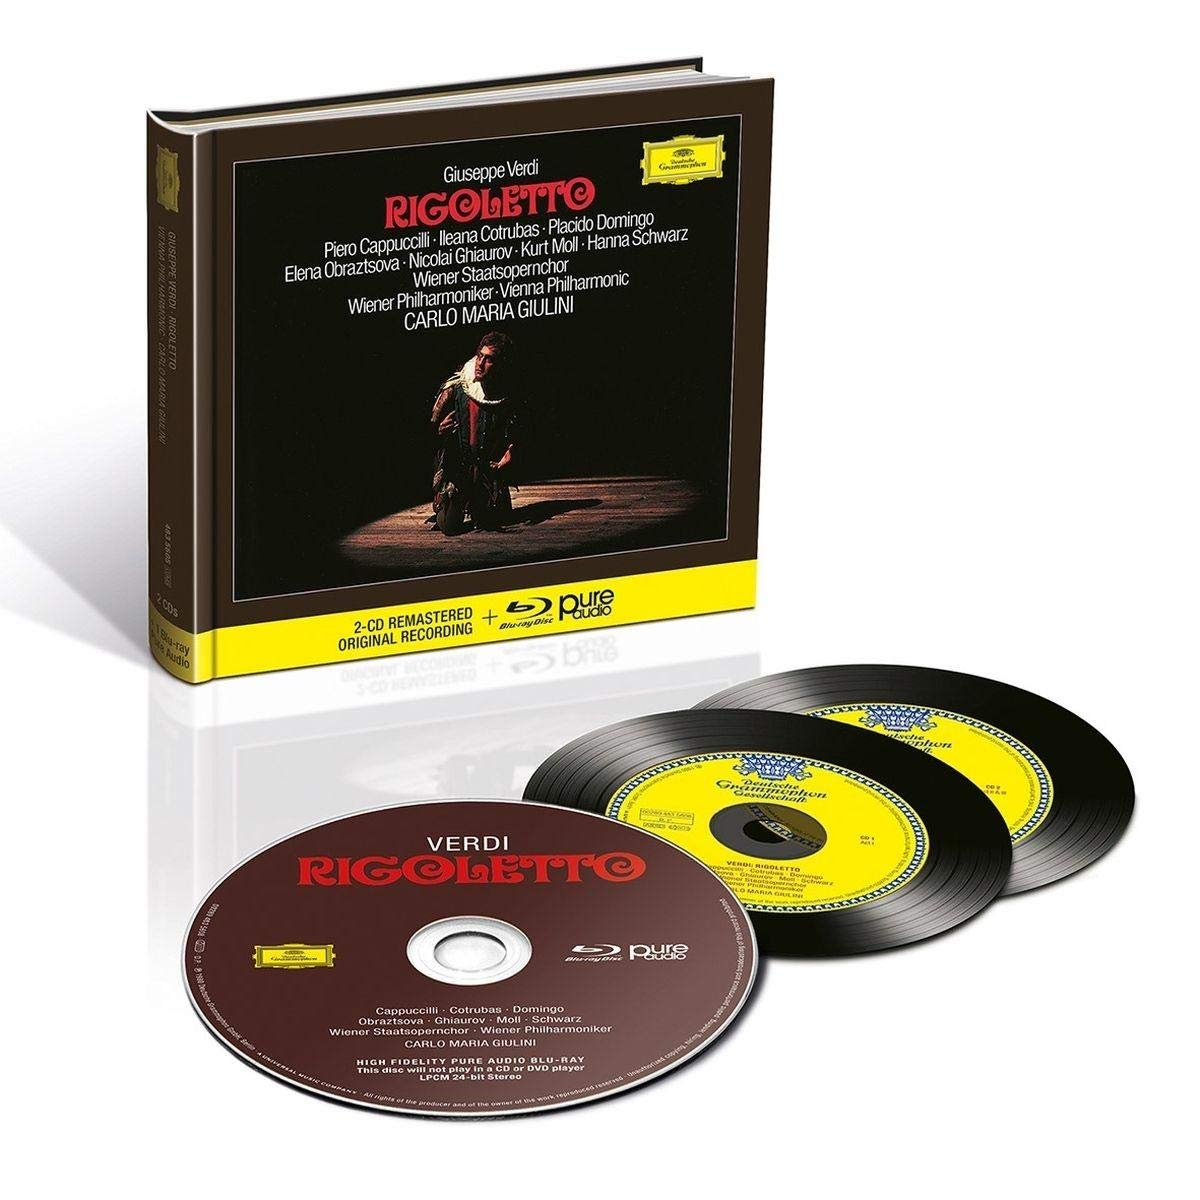 CD : Carlo Maria Giulini - Rigoletto (With Blu-ray Audio)